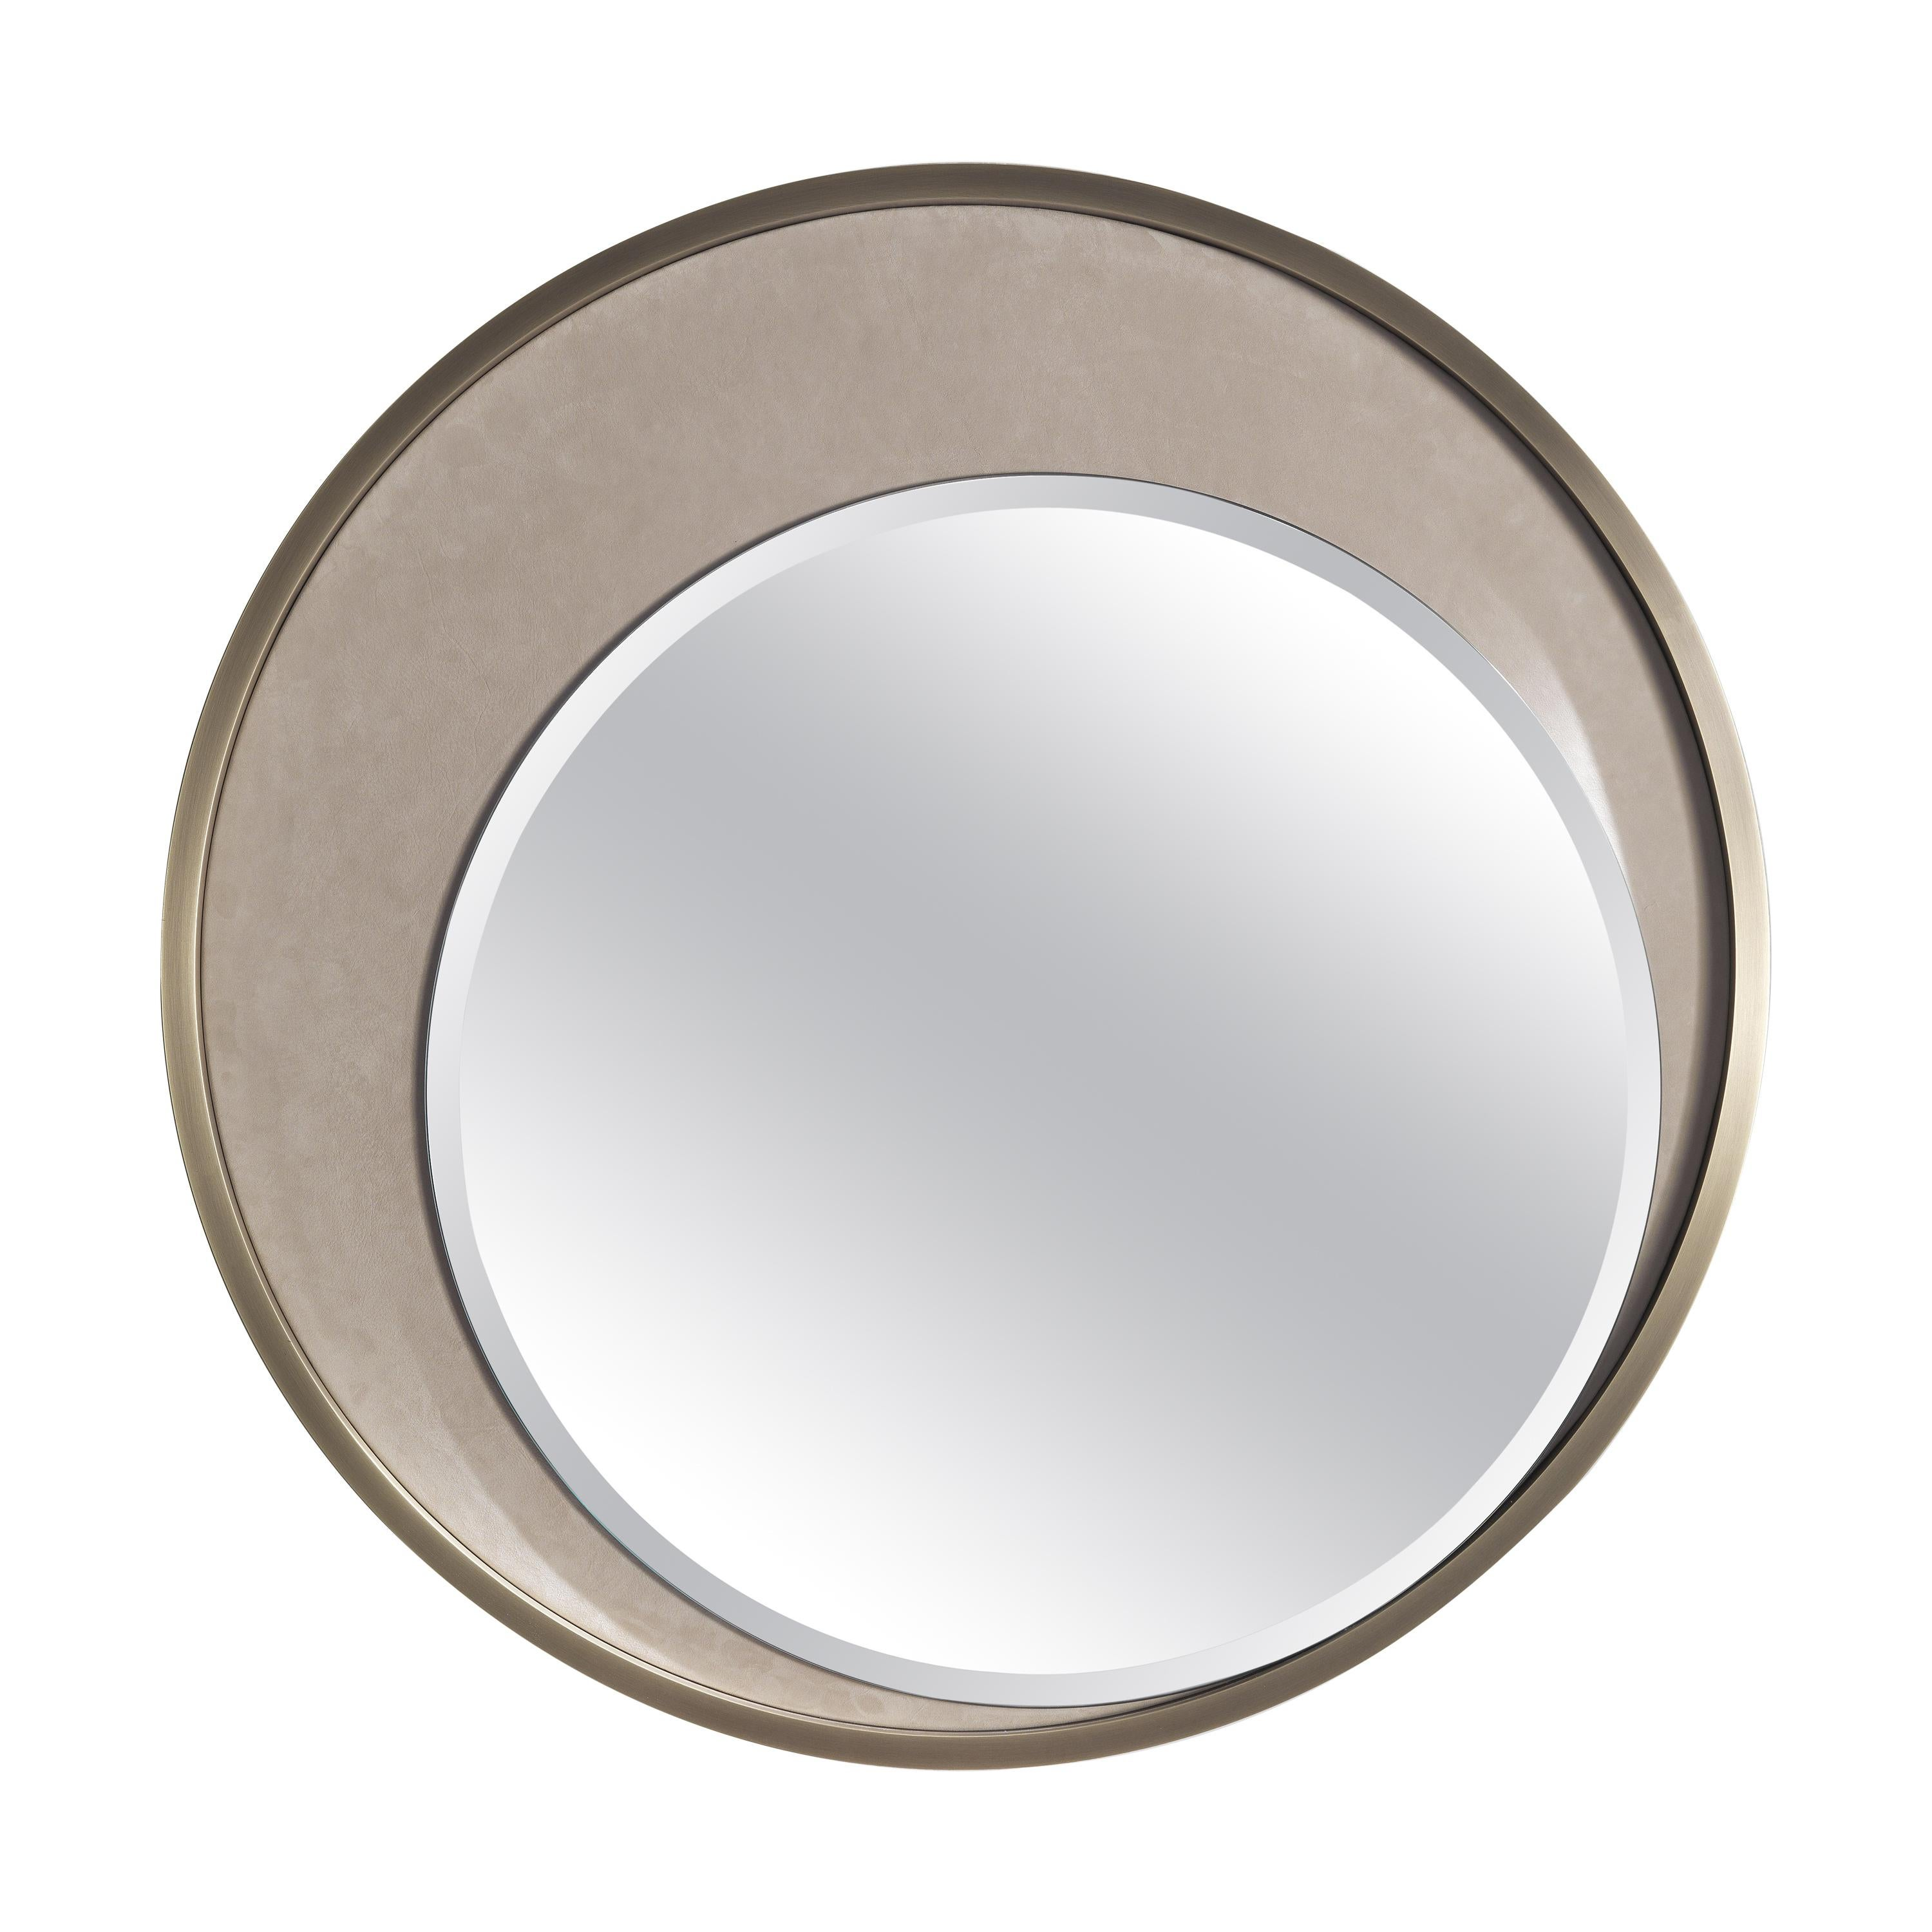 Gianfranco Ferré Home Carroll Mirror with Frame in Metal and Leather